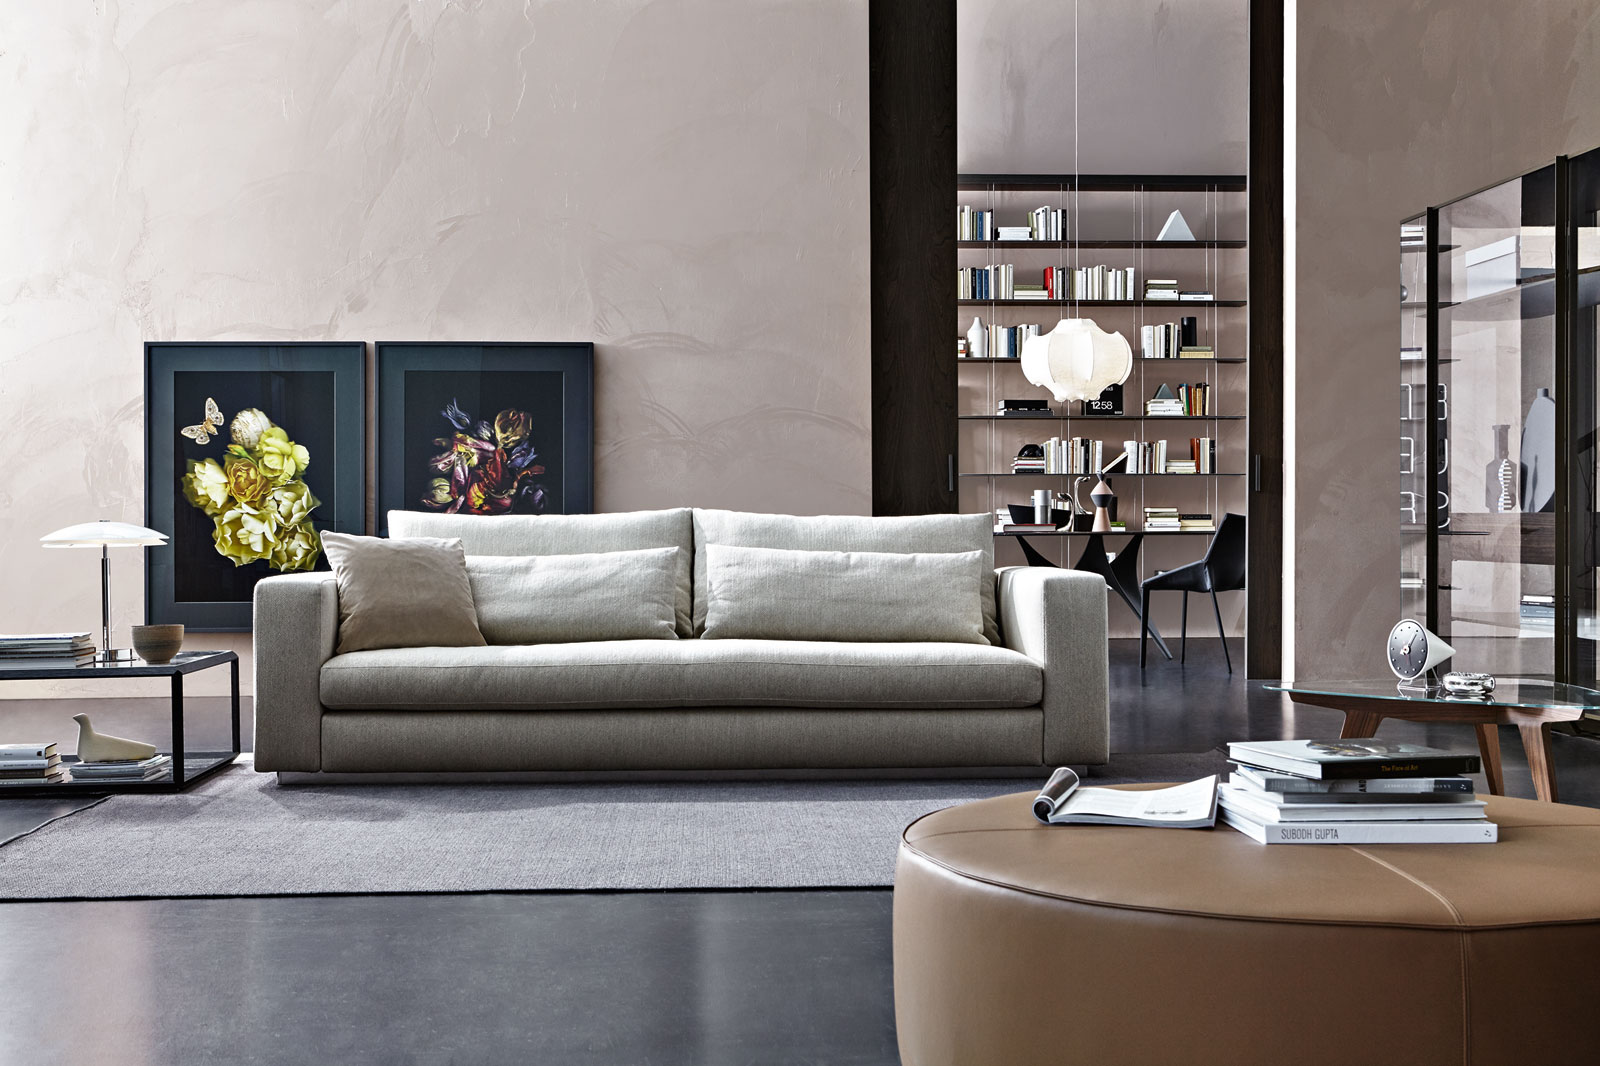 Molteni c reversi xl sofa buy from campbell watson uk for Molteni furniture